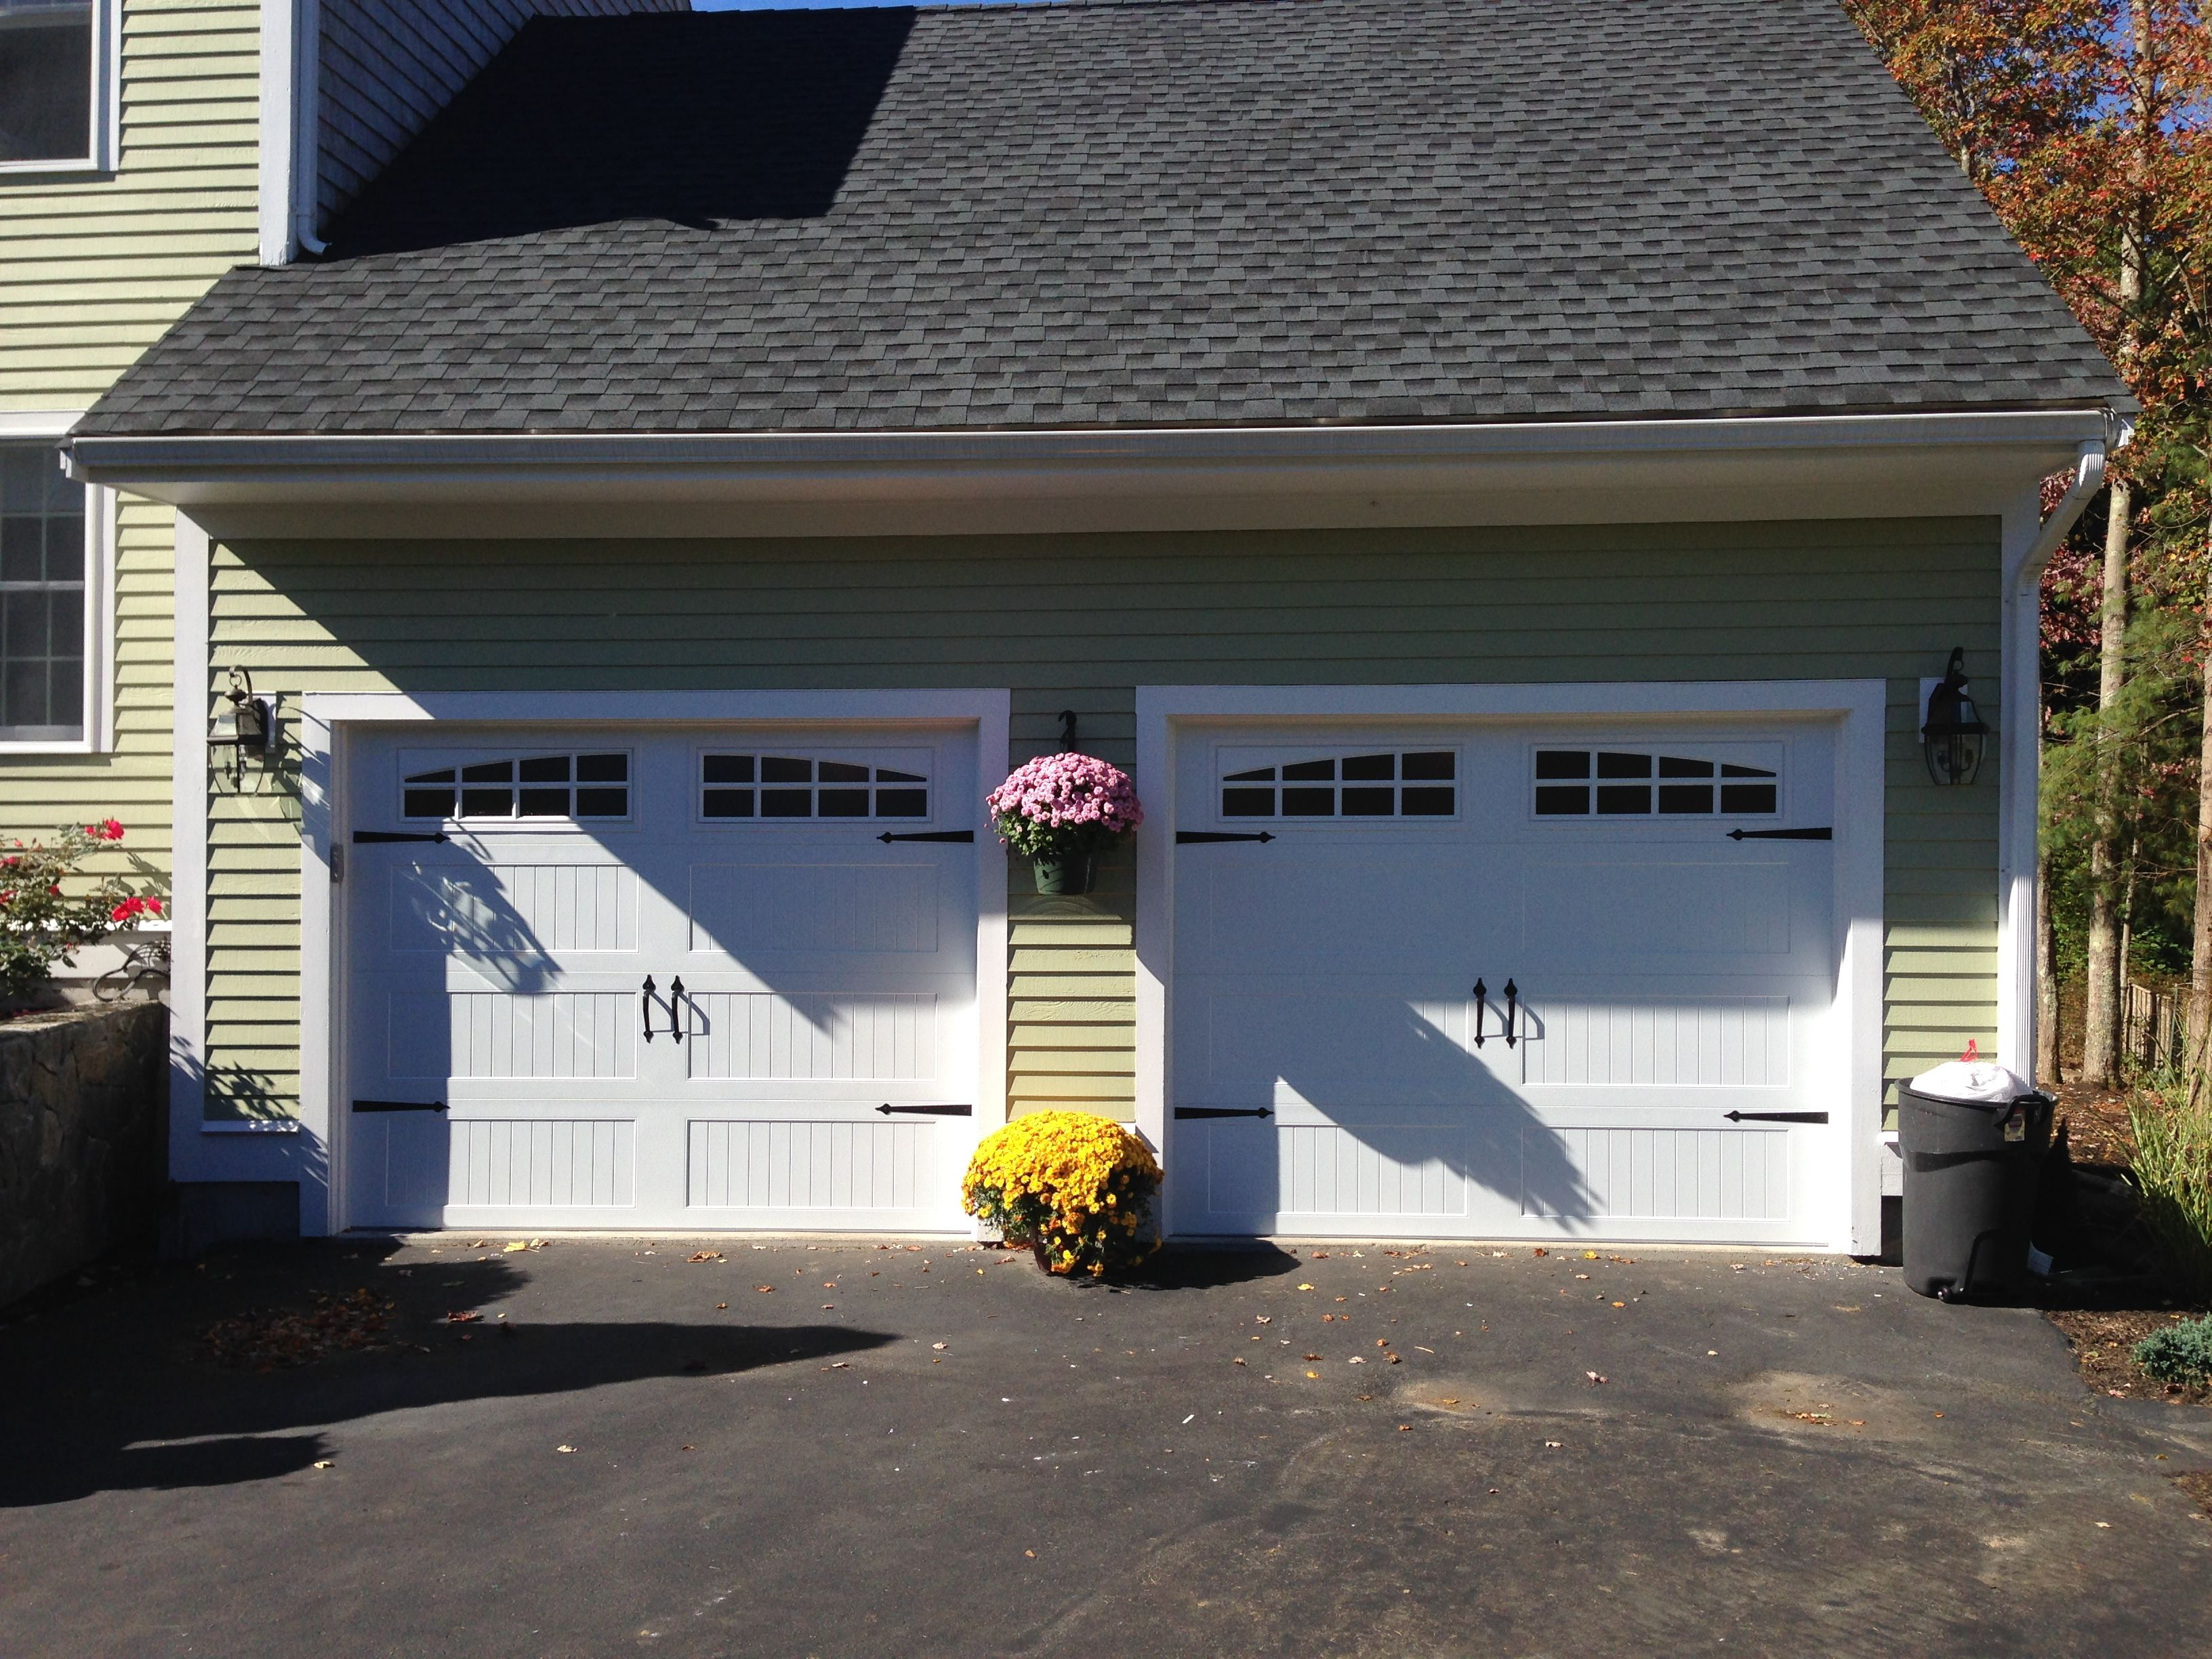 Haas model 660 steel carriage house style garage doors in white haas model 660 steel carriage house style garage doors in white with 6 pane glass flat black spade decorative hardware installed by mortland ove rubansaba